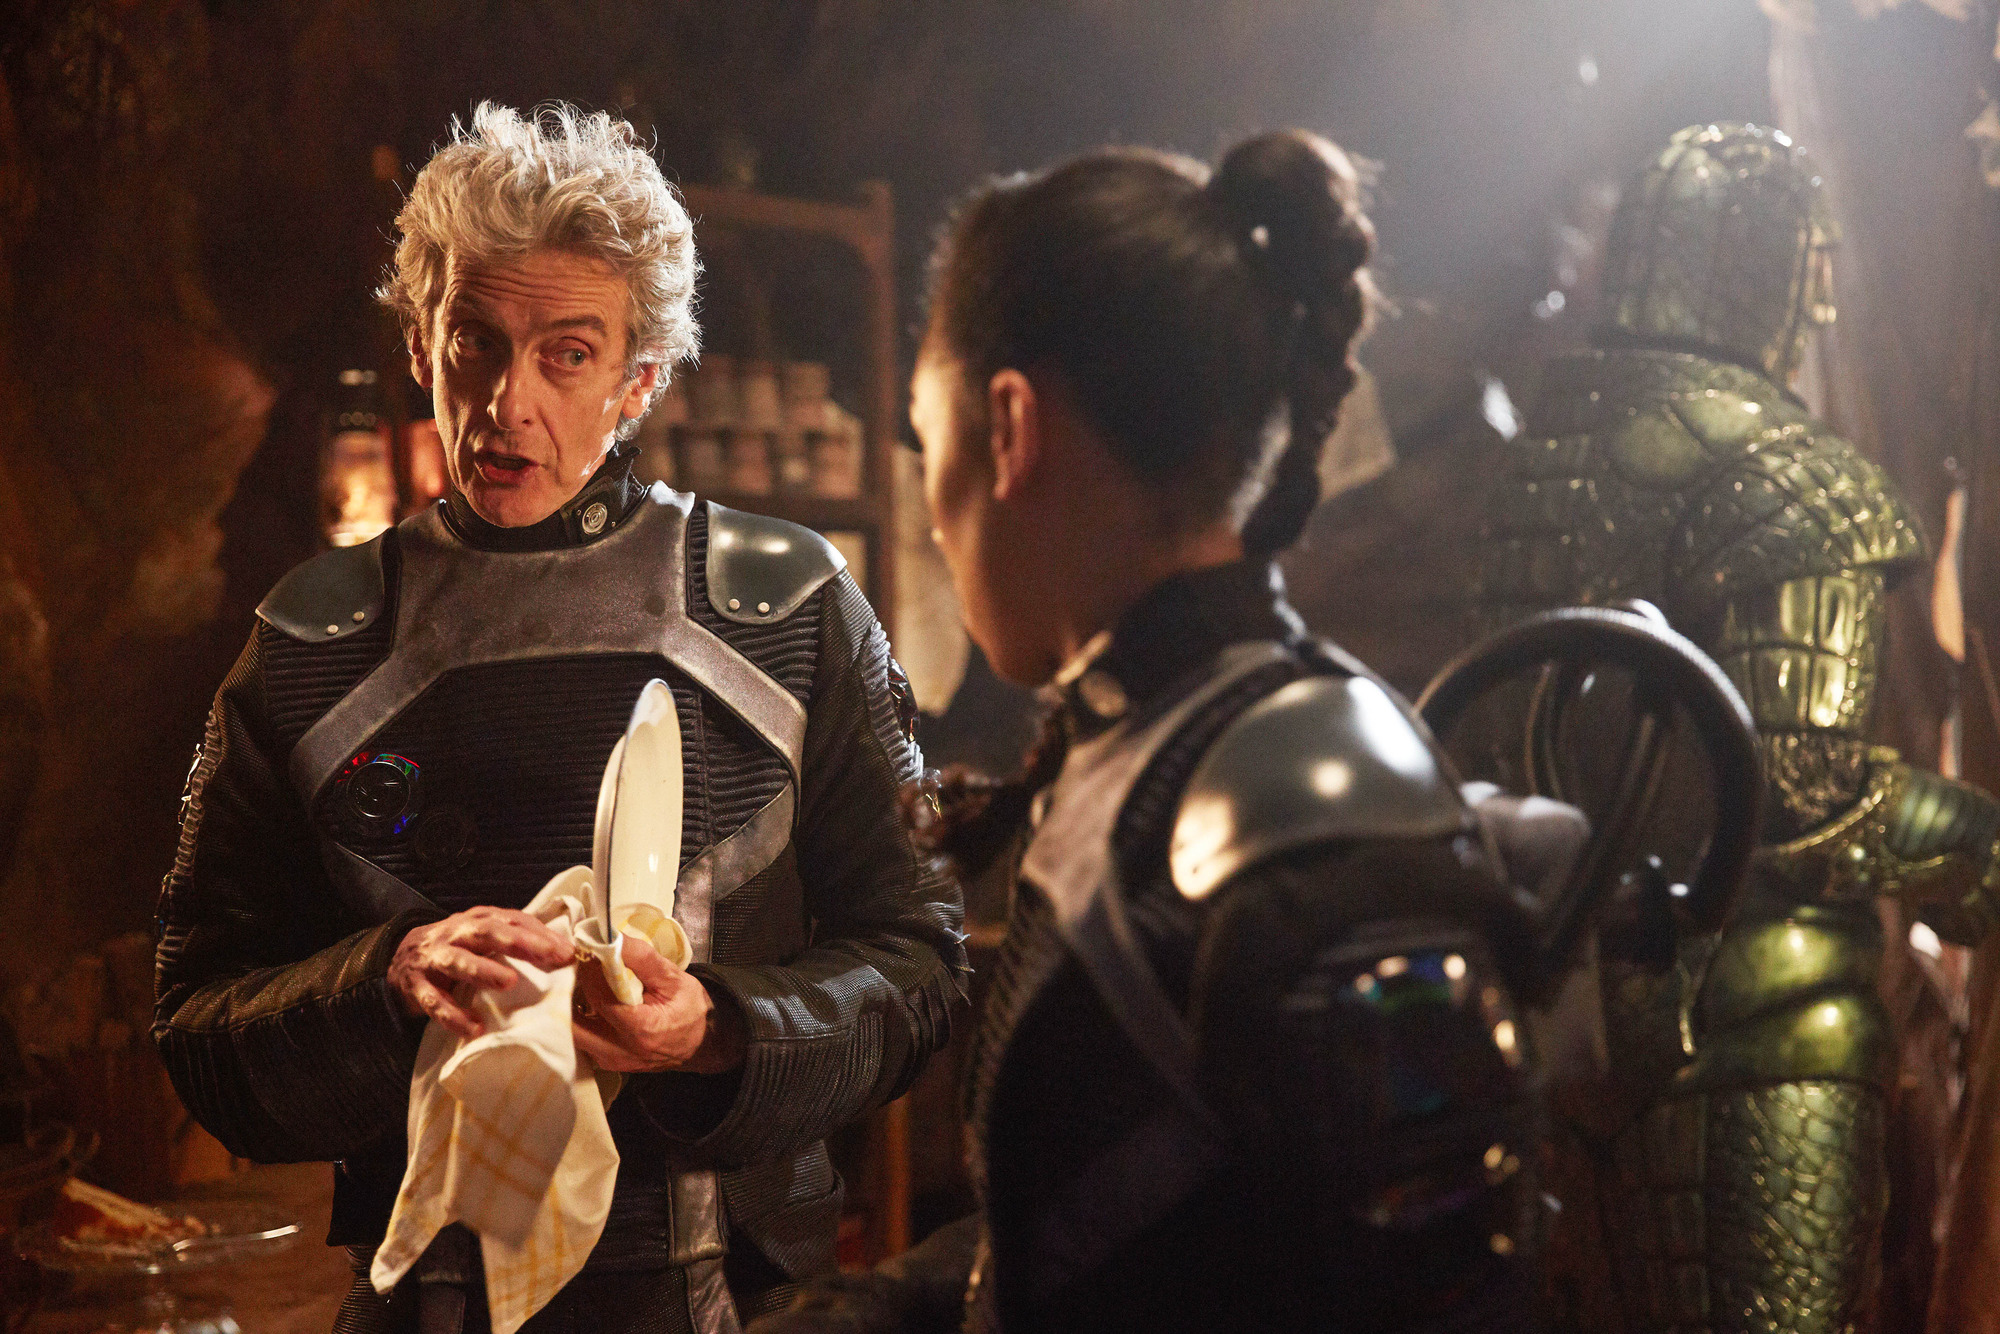 Empress of Mars: The Doctor (Peter Capaldi), Bill (Pearl Mackie), Friday (Richard Ashton) (Credit: BBC/BBC Worldwide (Simon Ridgway))